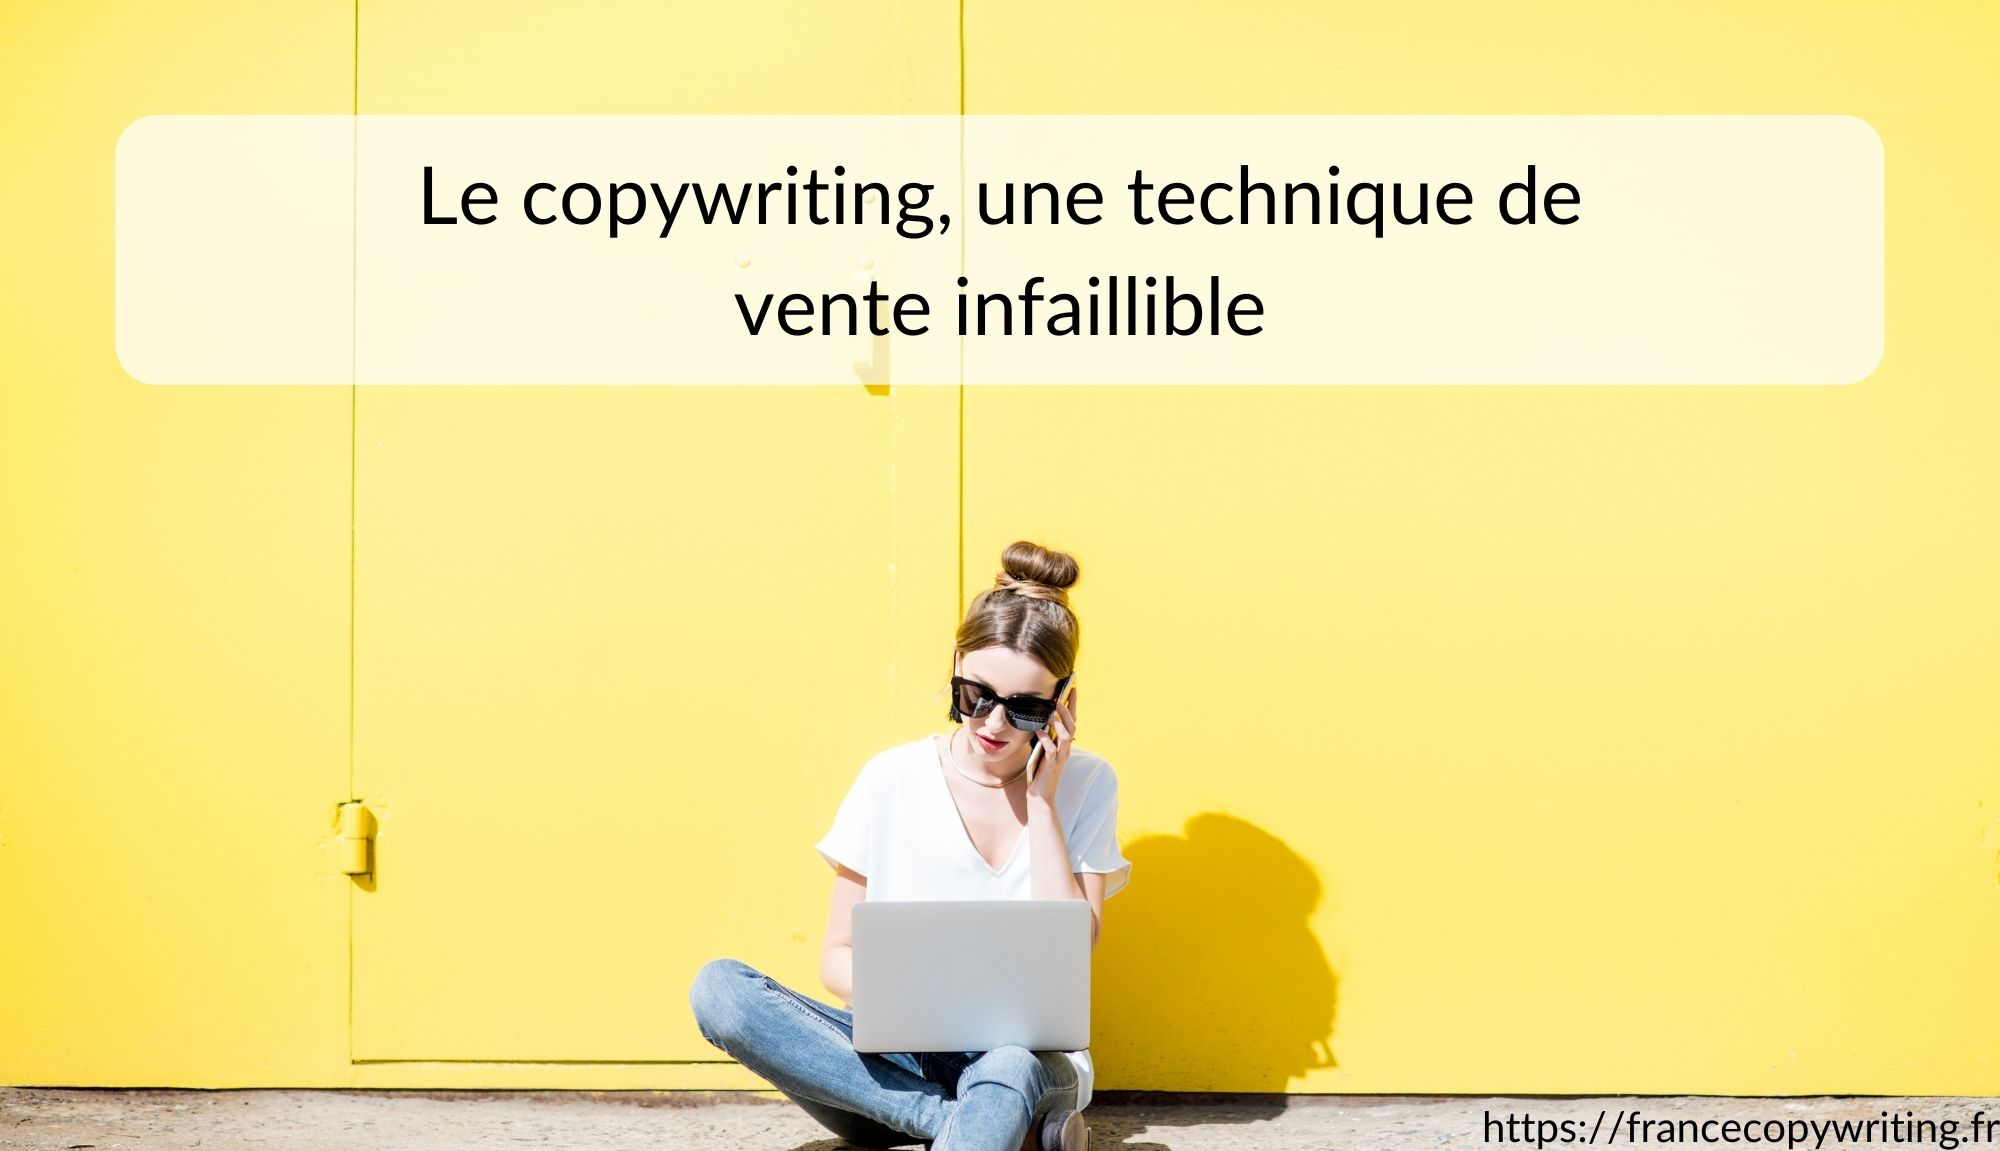 Le copywriting, une technique de vente infaillible